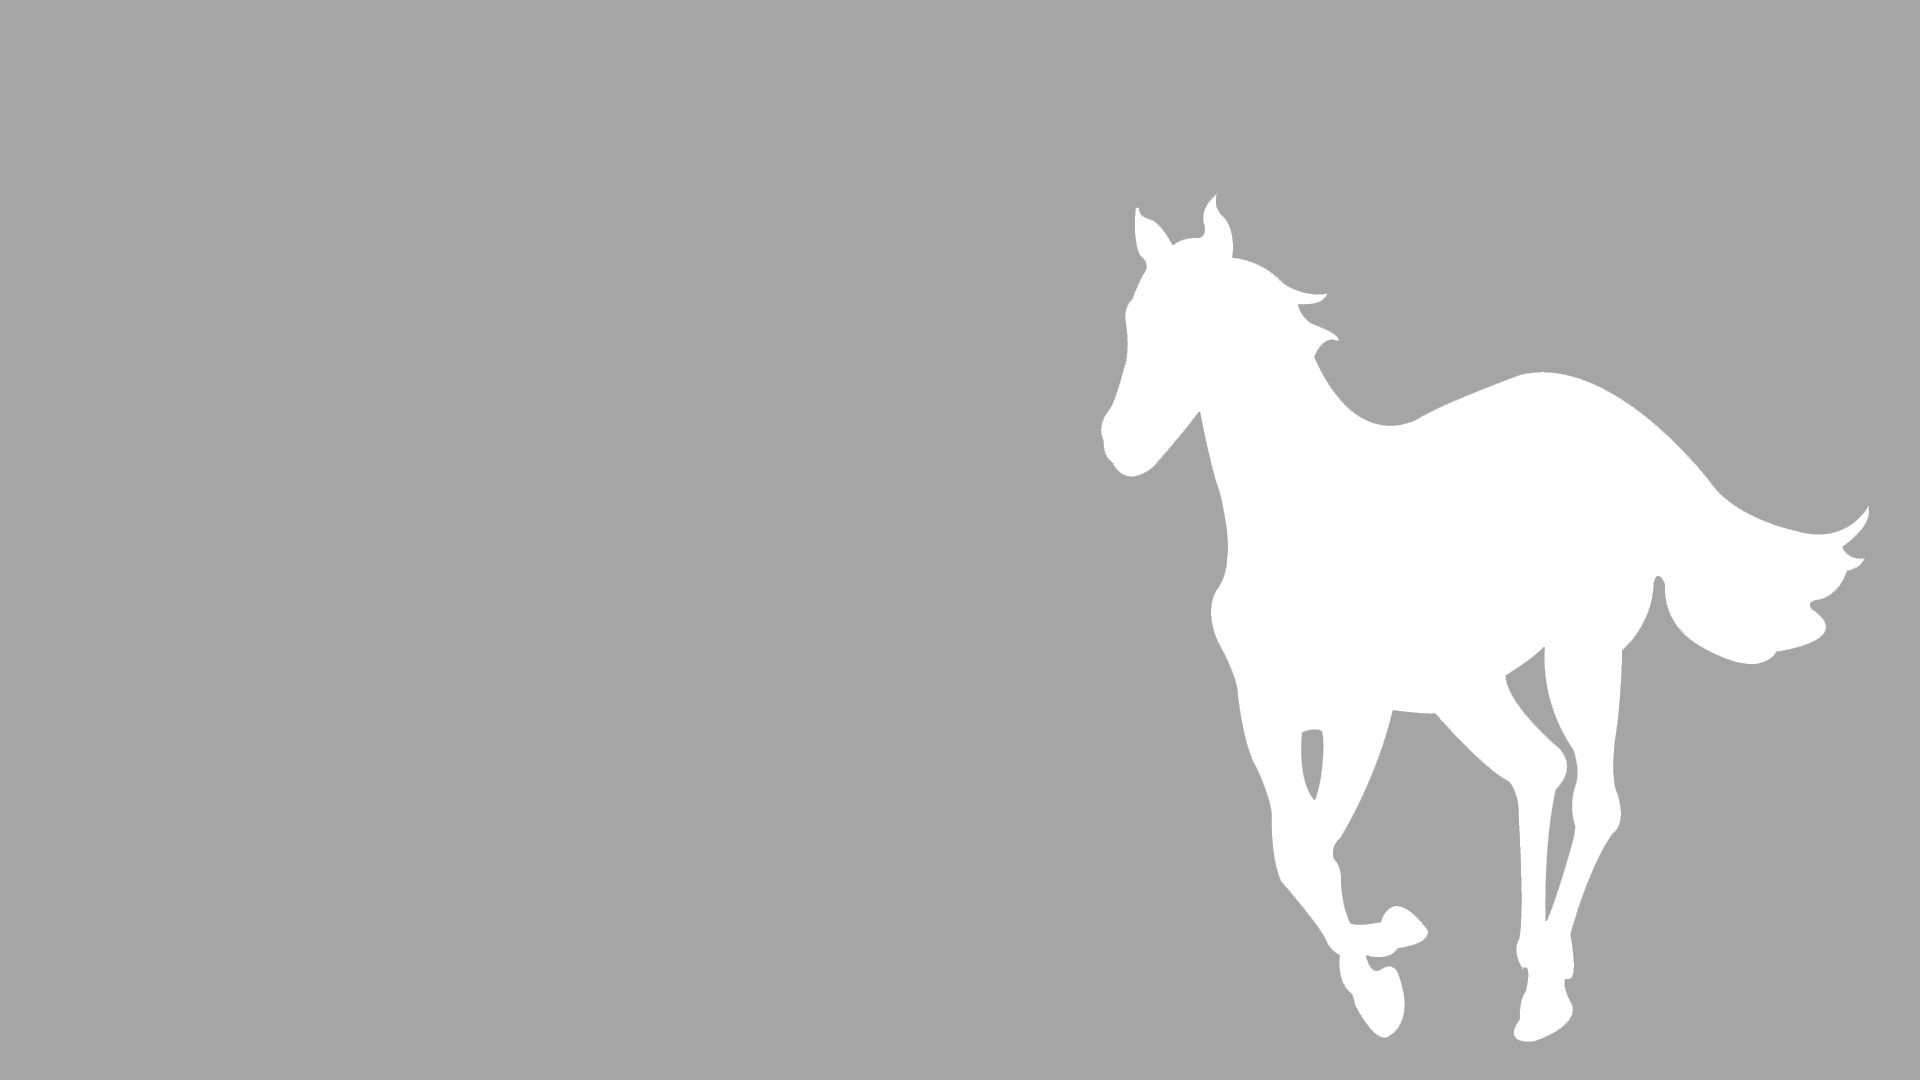 Deftones free download wallpaper